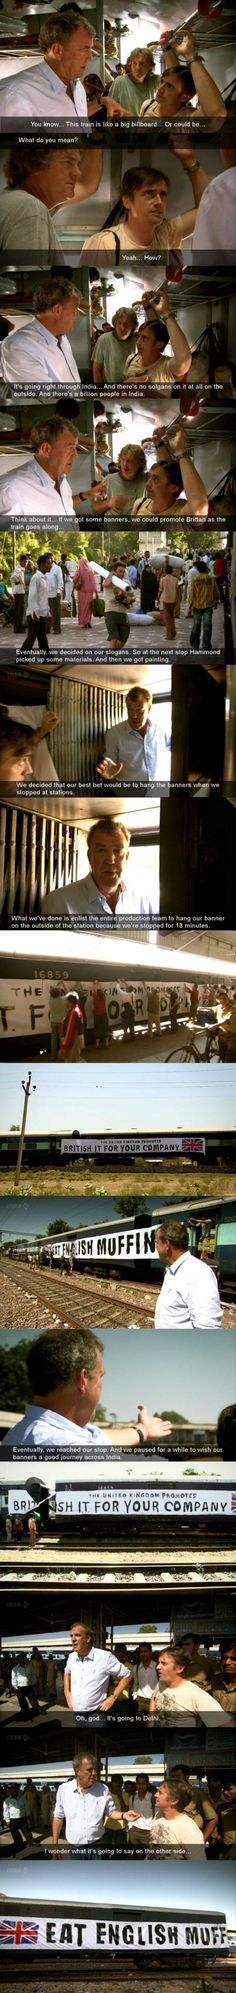 Gotta love some immature Top Gear-related humor.